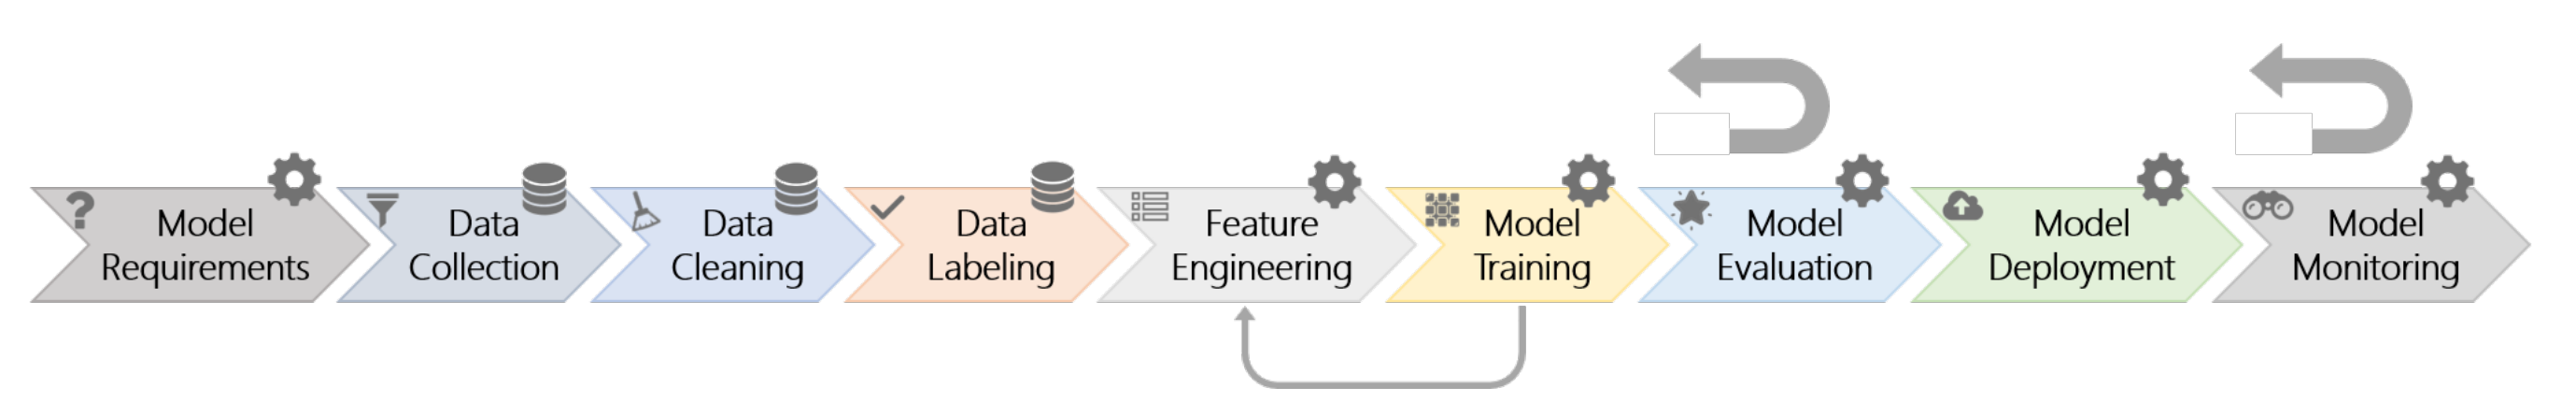 Machine learning workflow model from Microsoft